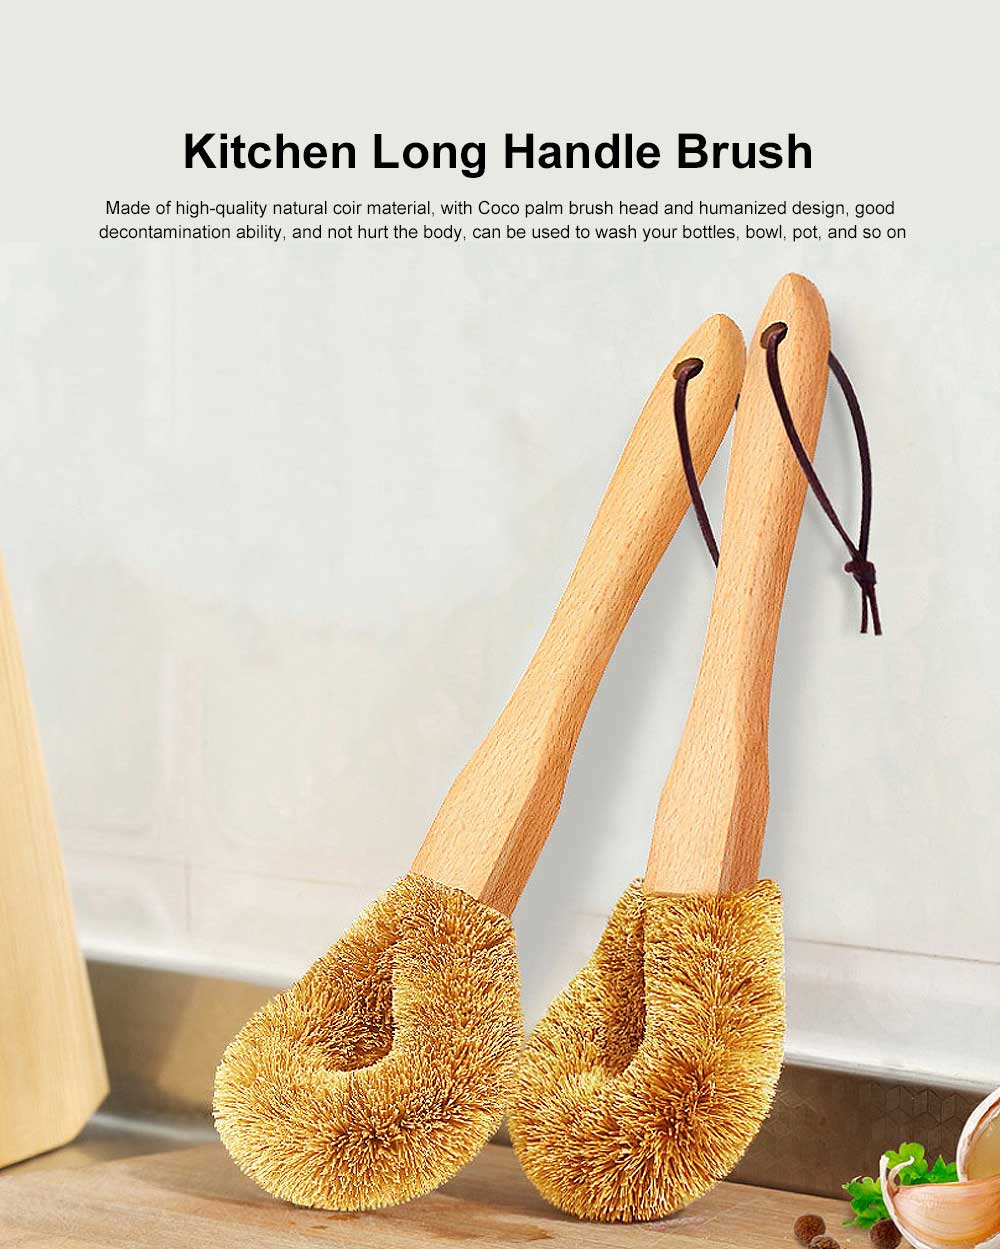 Kitchen Long Handle Brush, Household Practical Brush for Washing Pot, High-quality Natural Coir Cleaning Brush 0